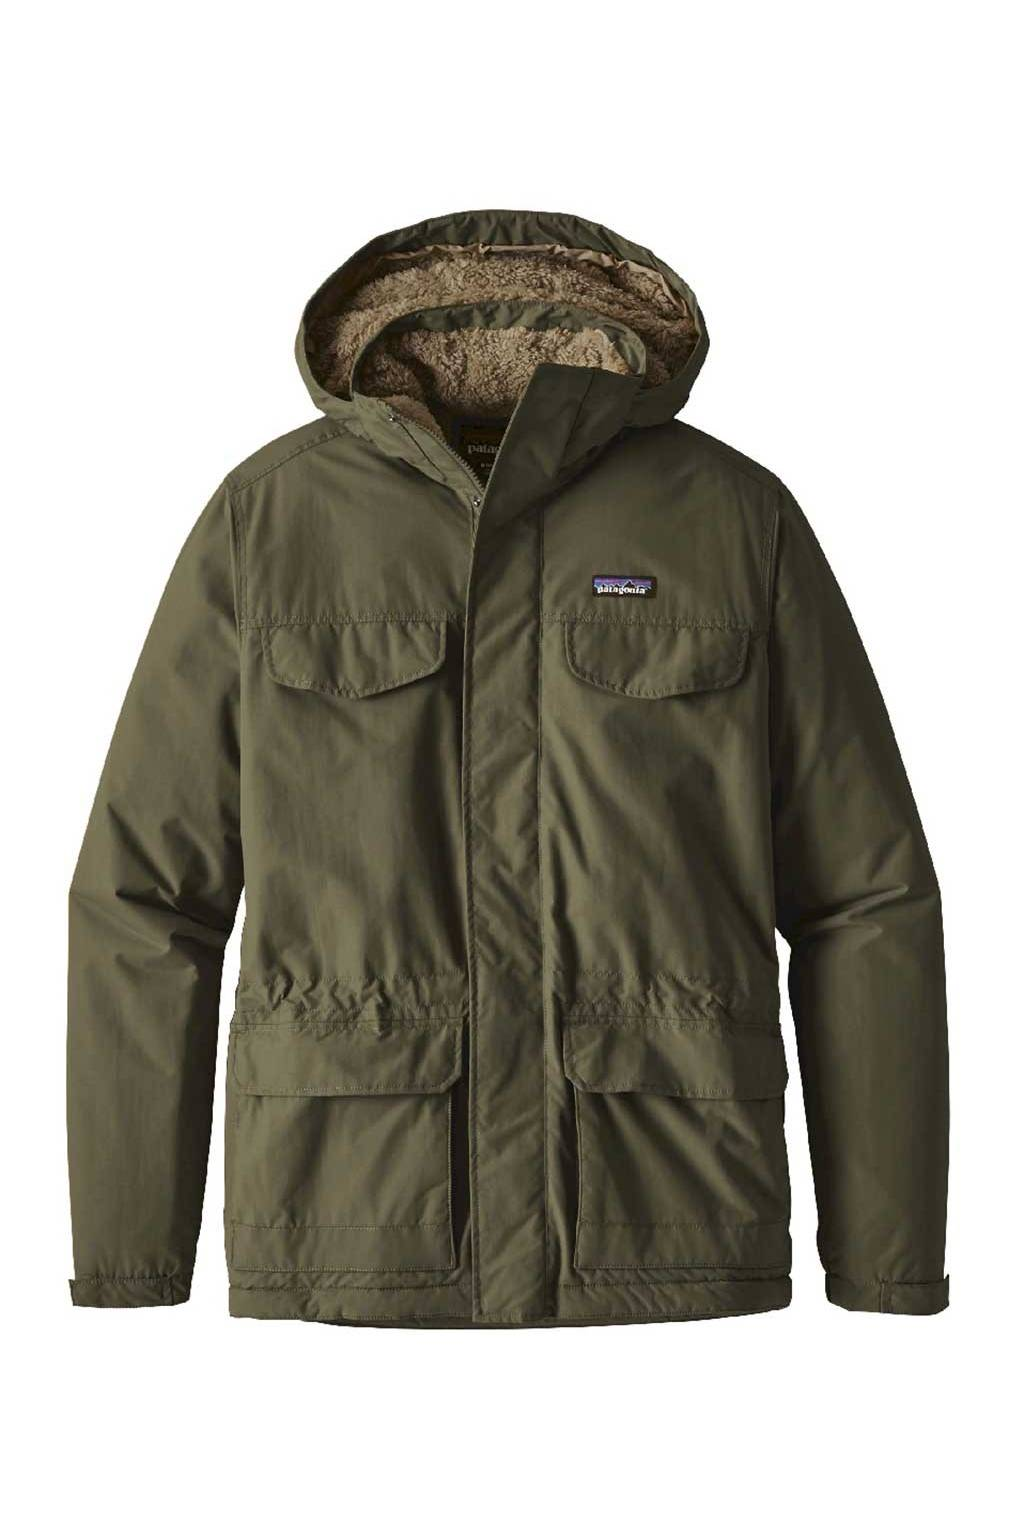 Patagonia Men's Isthmus 27021 Jacket